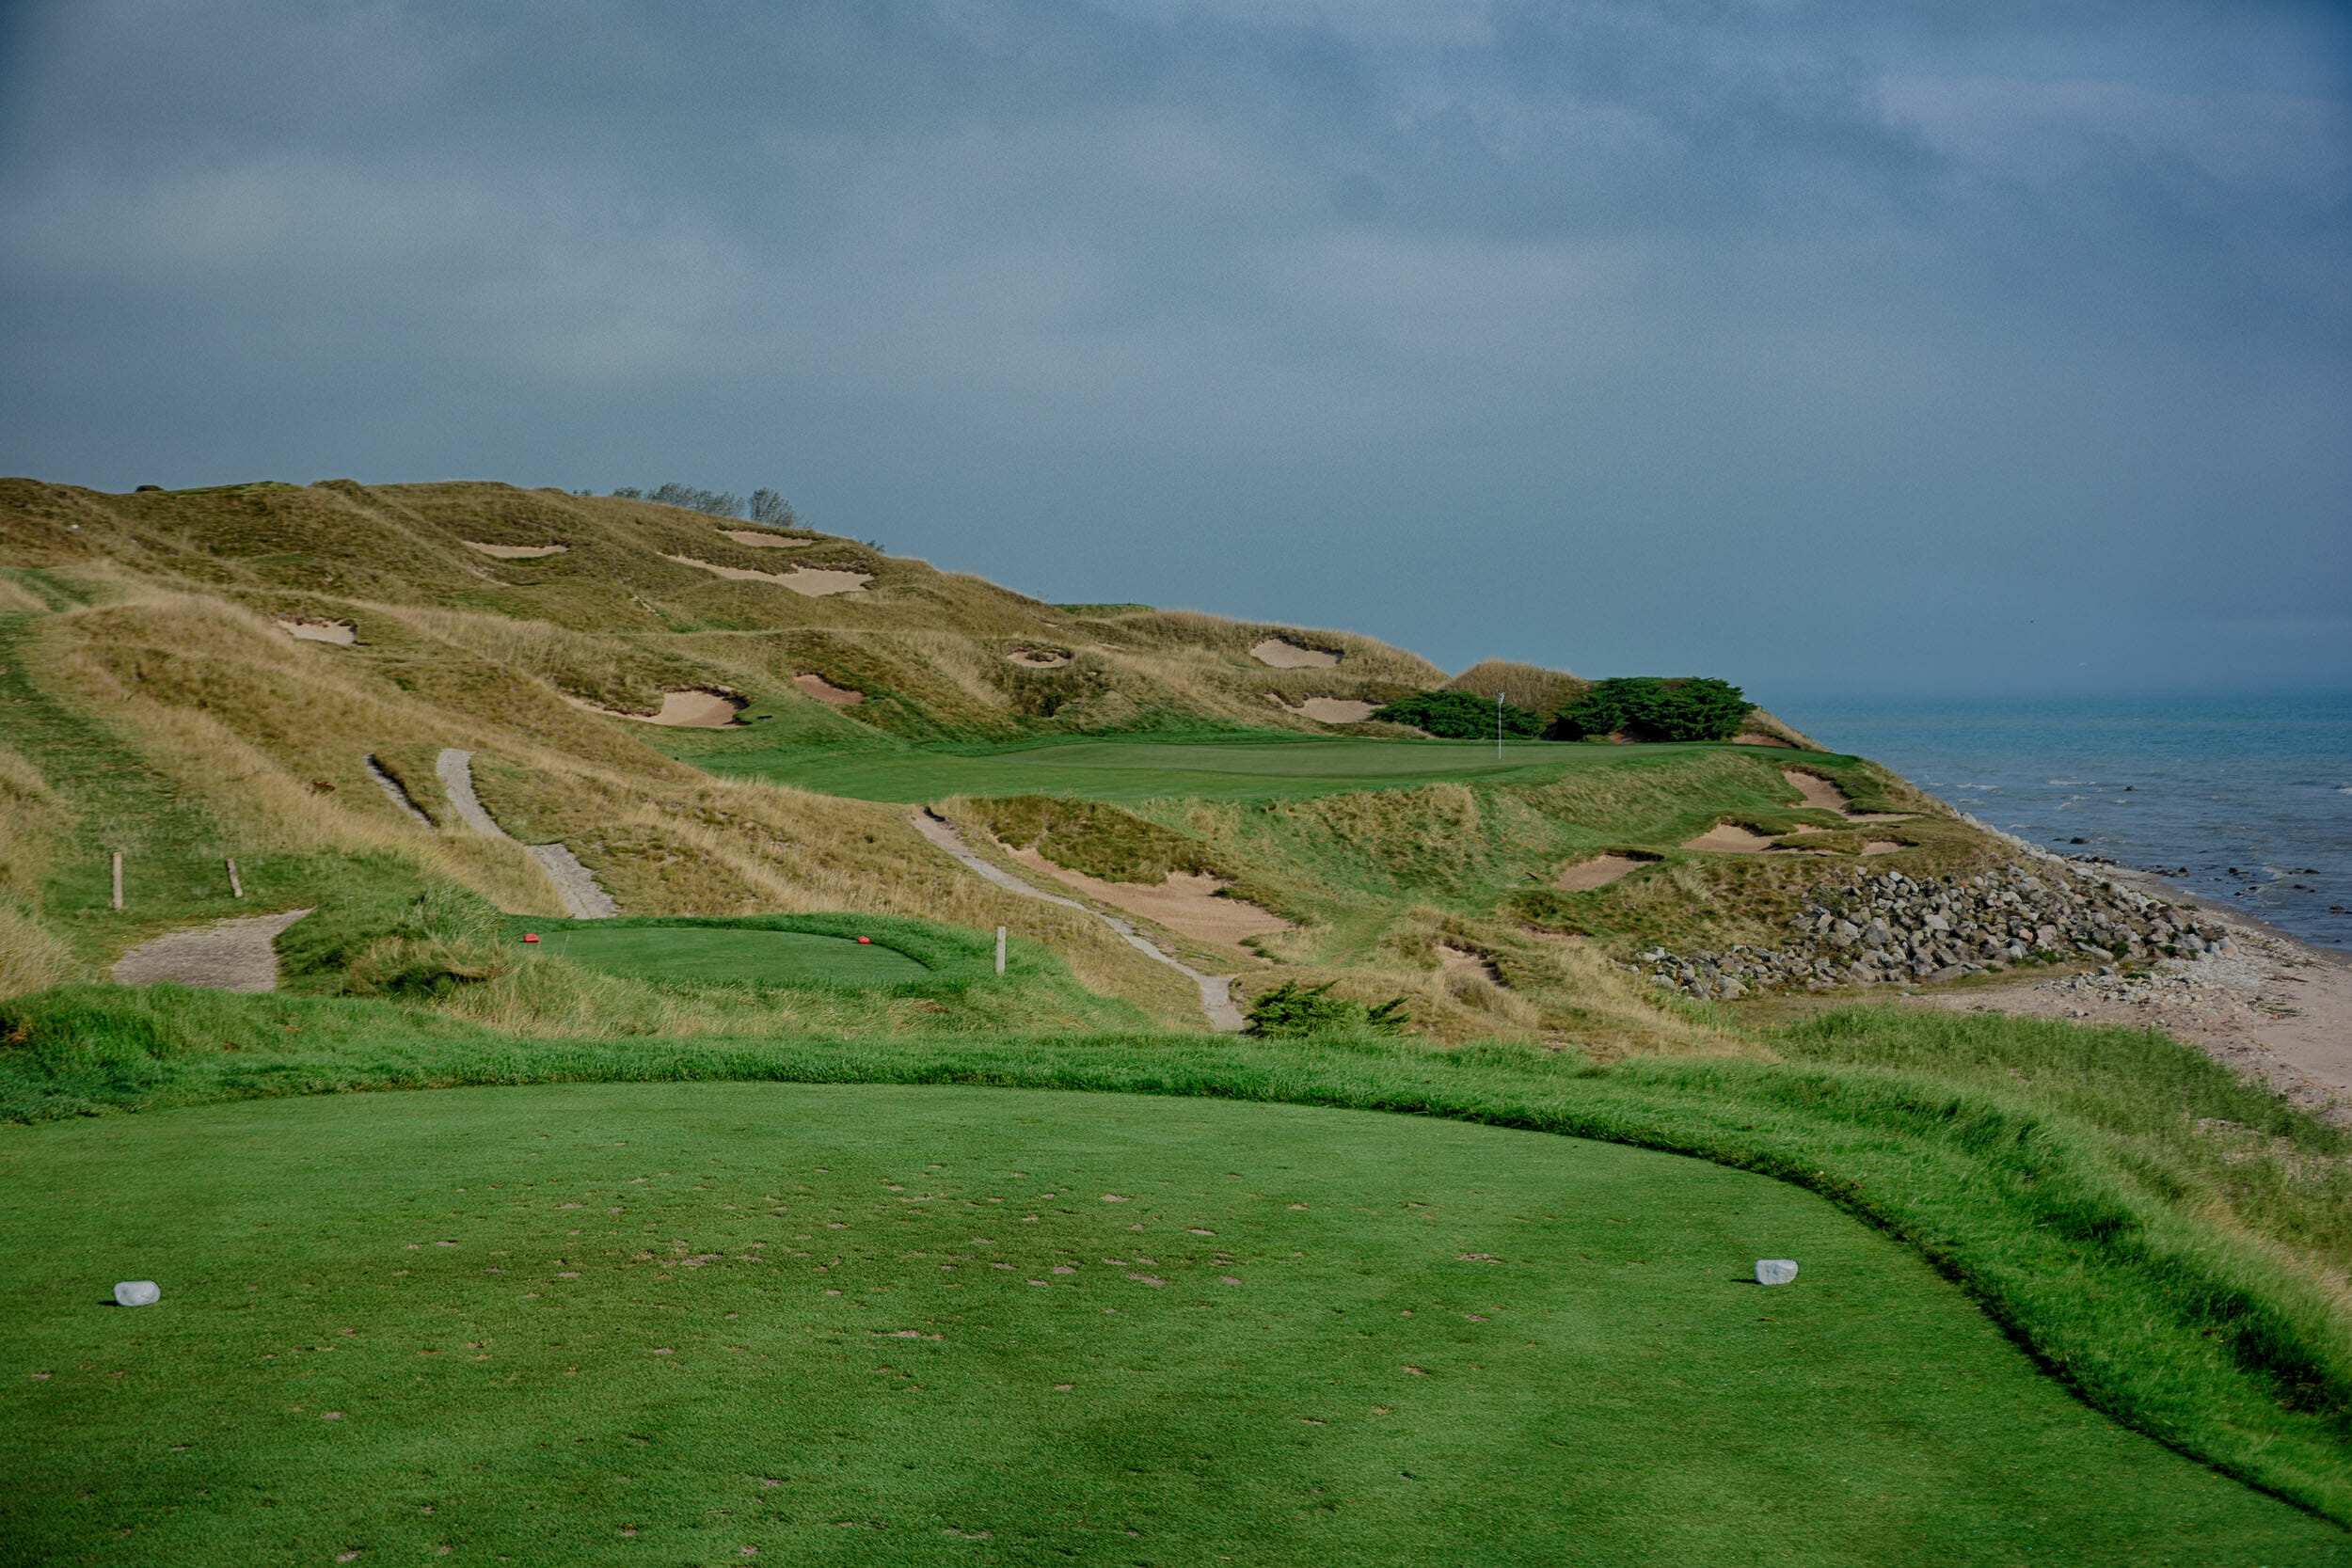 Image of the 7th tee on The Straits course at Whistling Straits, Destination Kohler, Sheboygan, Wisconsin, USA